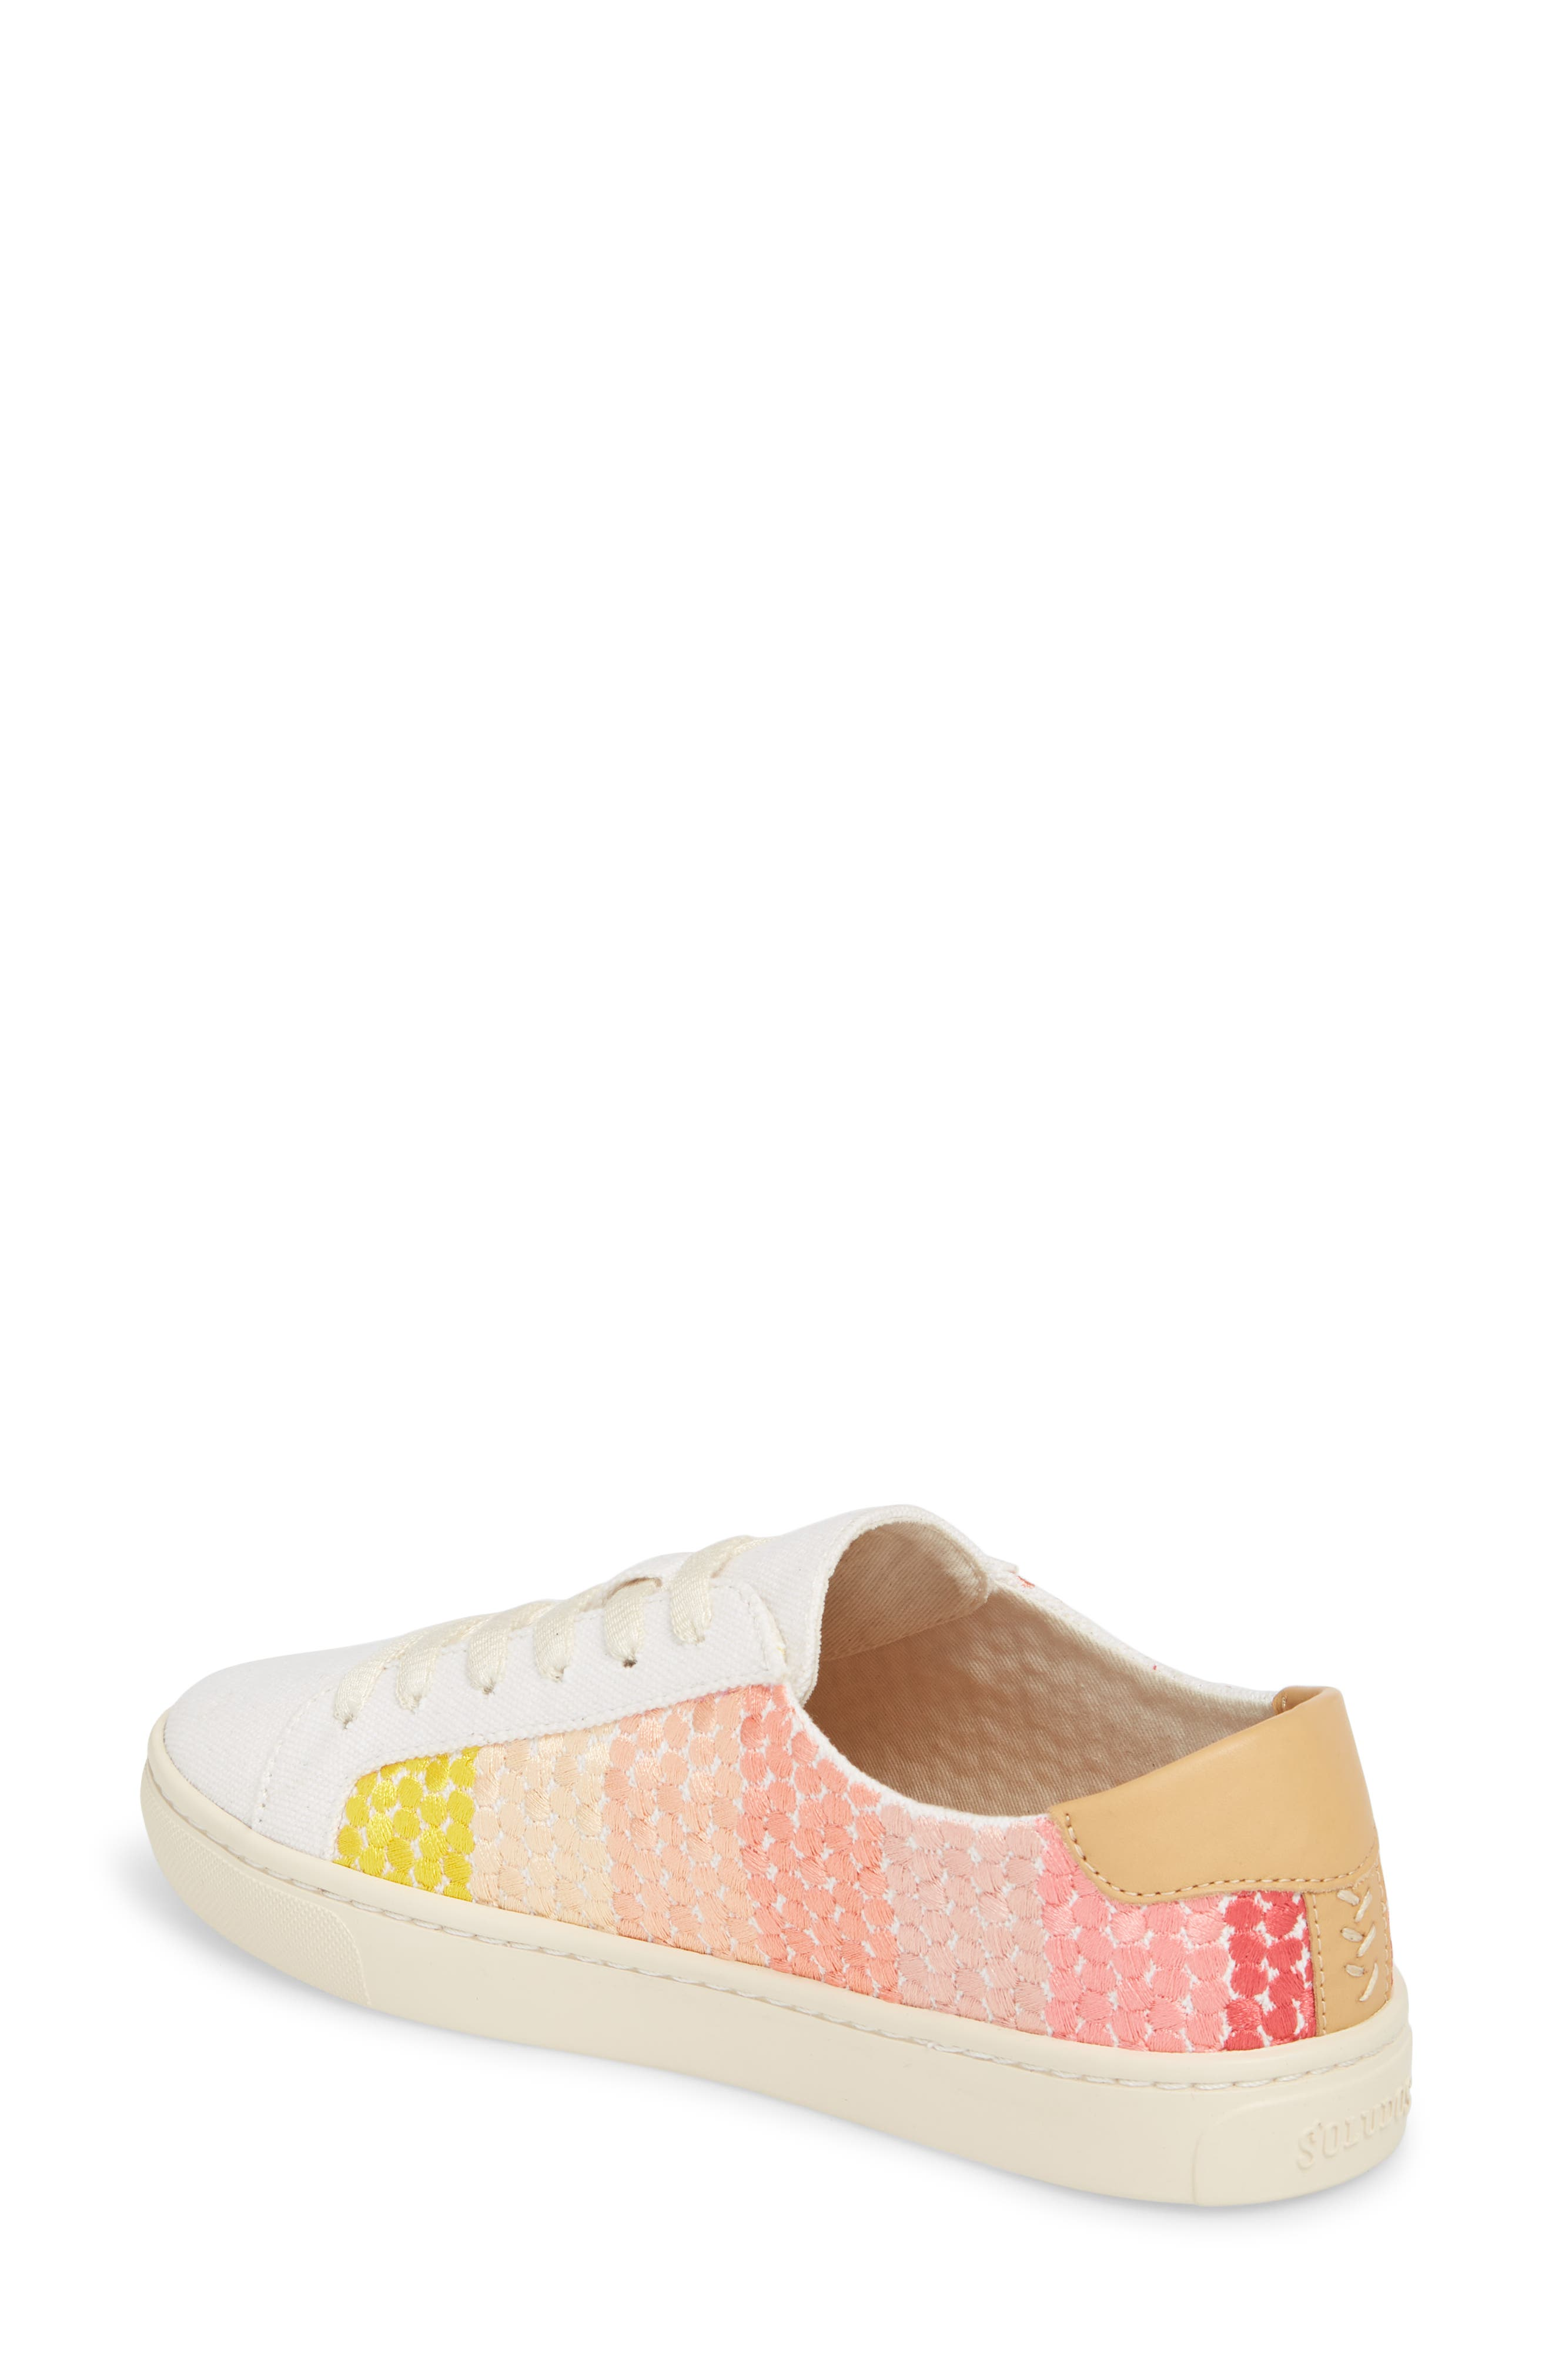 Embroidered Ombre Sneaker,                             Alternate thumbnail 2, color,                             731